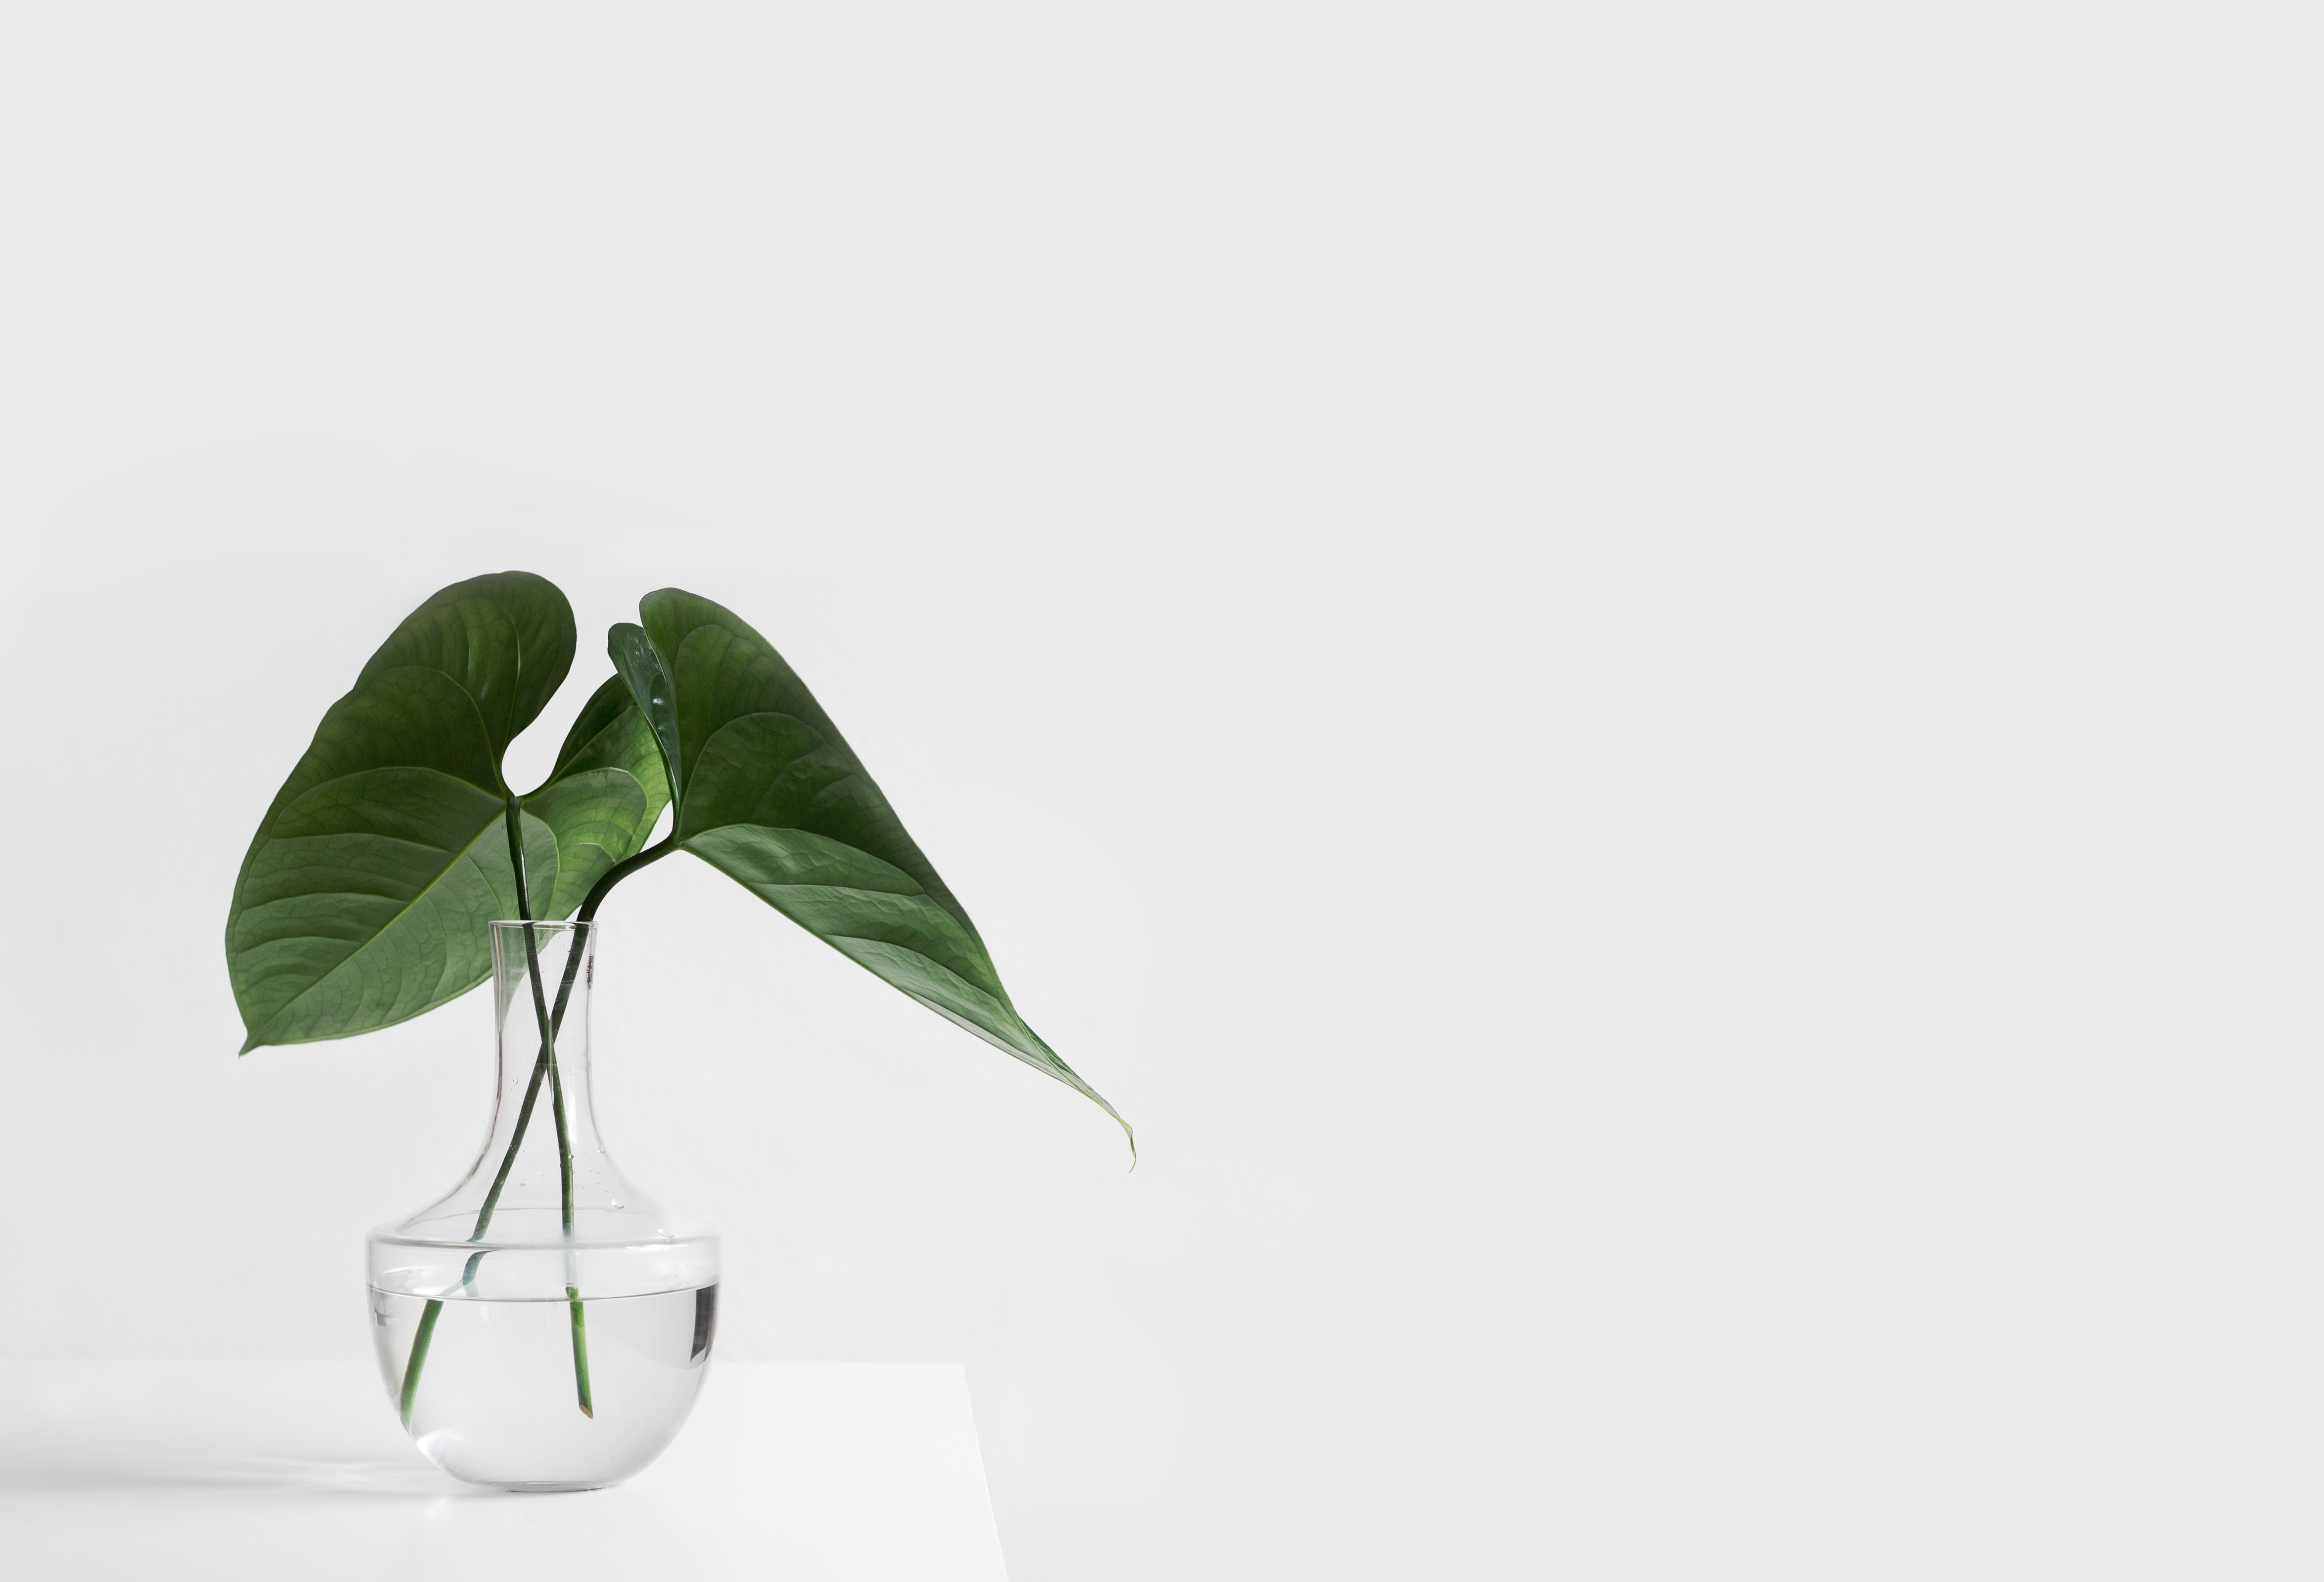 green leafed elephant ear plant in a clear glass on a white background